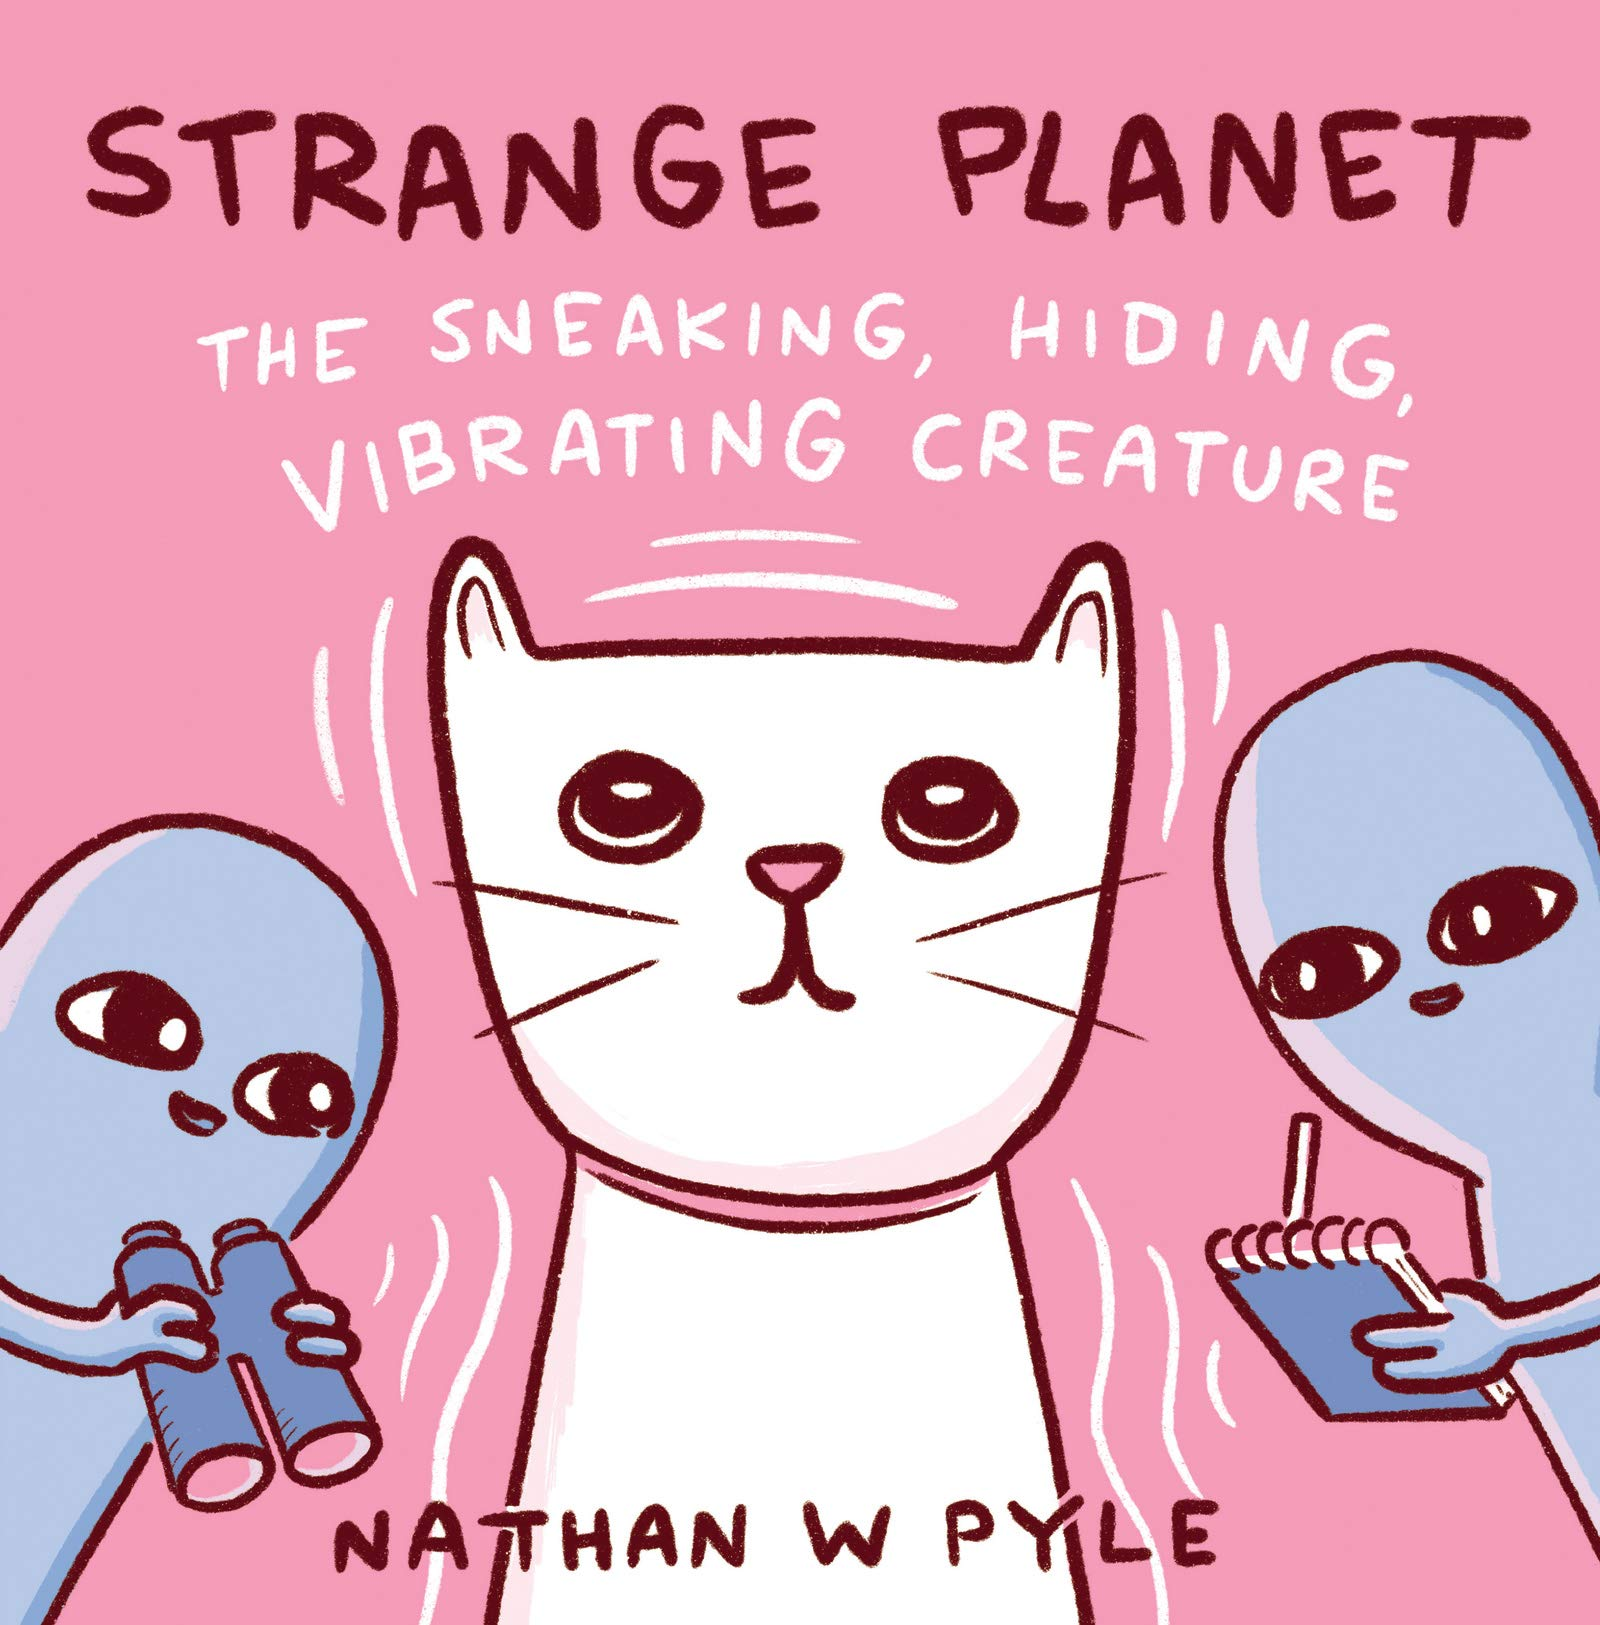 Strange Planet: The Sneaking, Hiding, Vibrating Creature